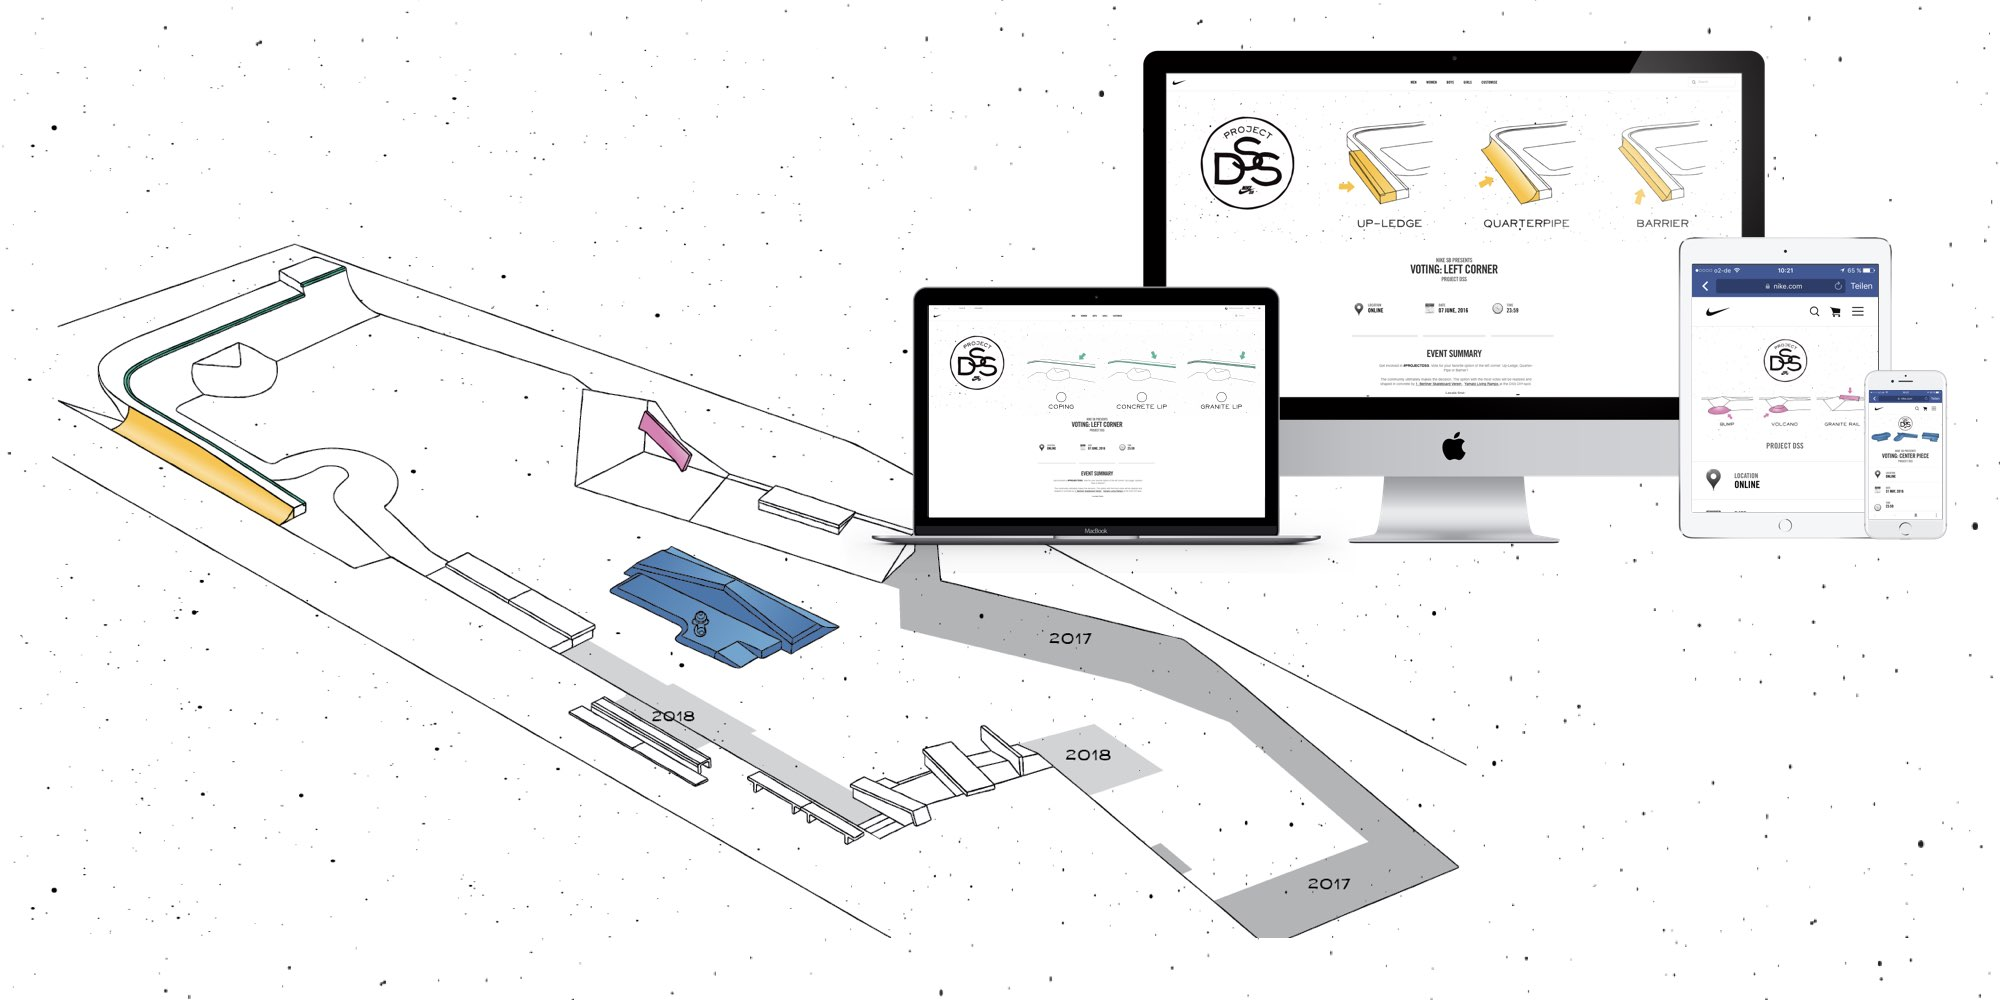 Project DSS, Skatepark Mockup | fine lines Marketing GmbH